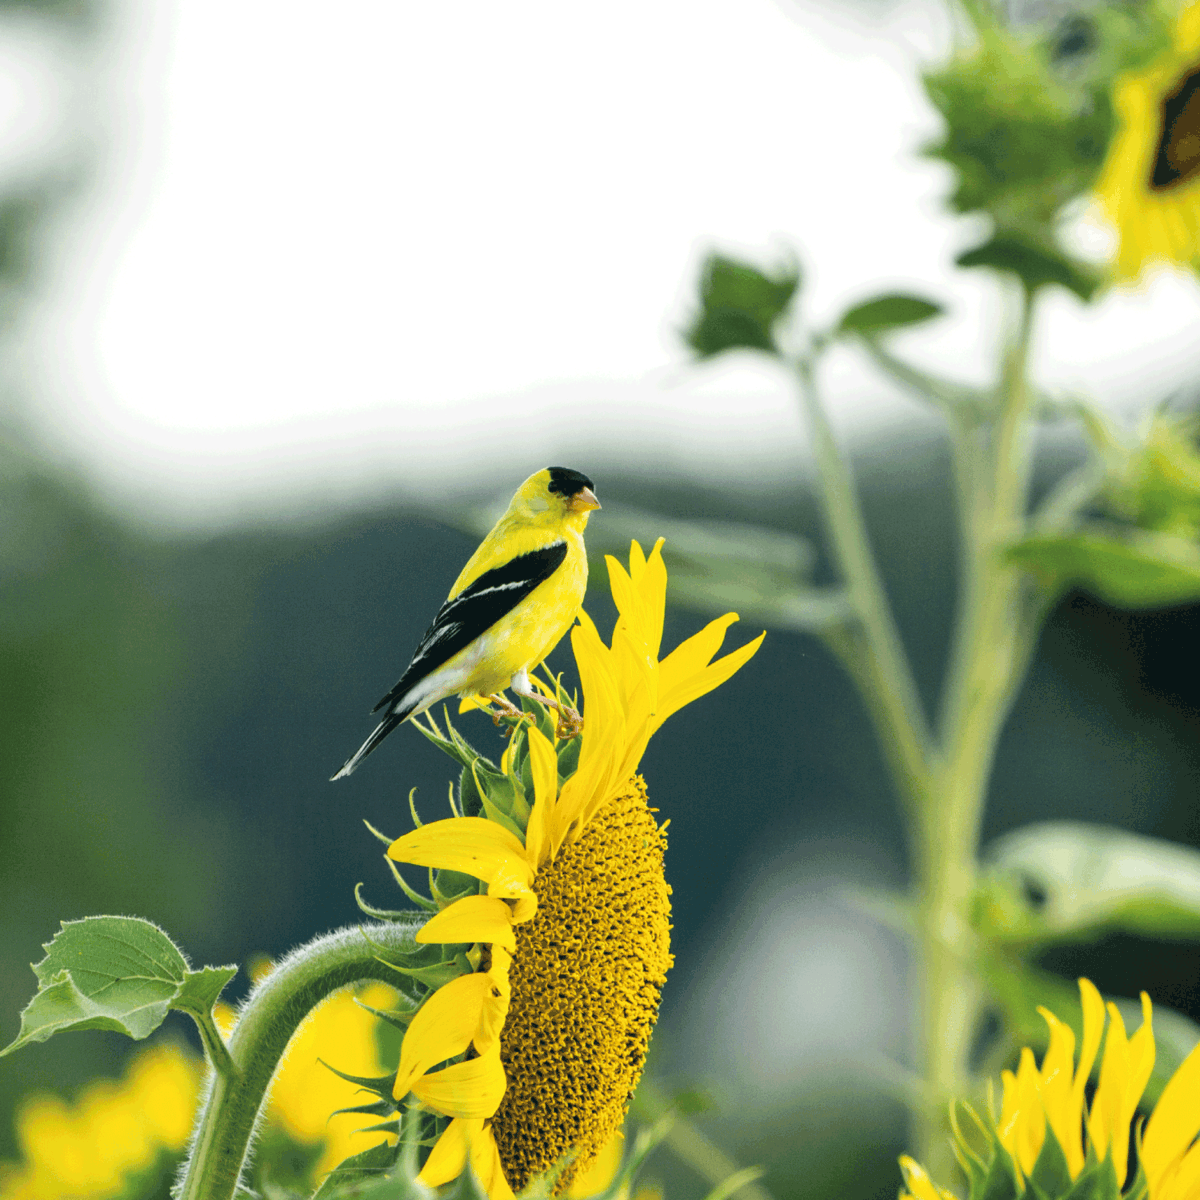 Bright yellow goldfinch sits on sunflower in a sunflower field on a summer day.